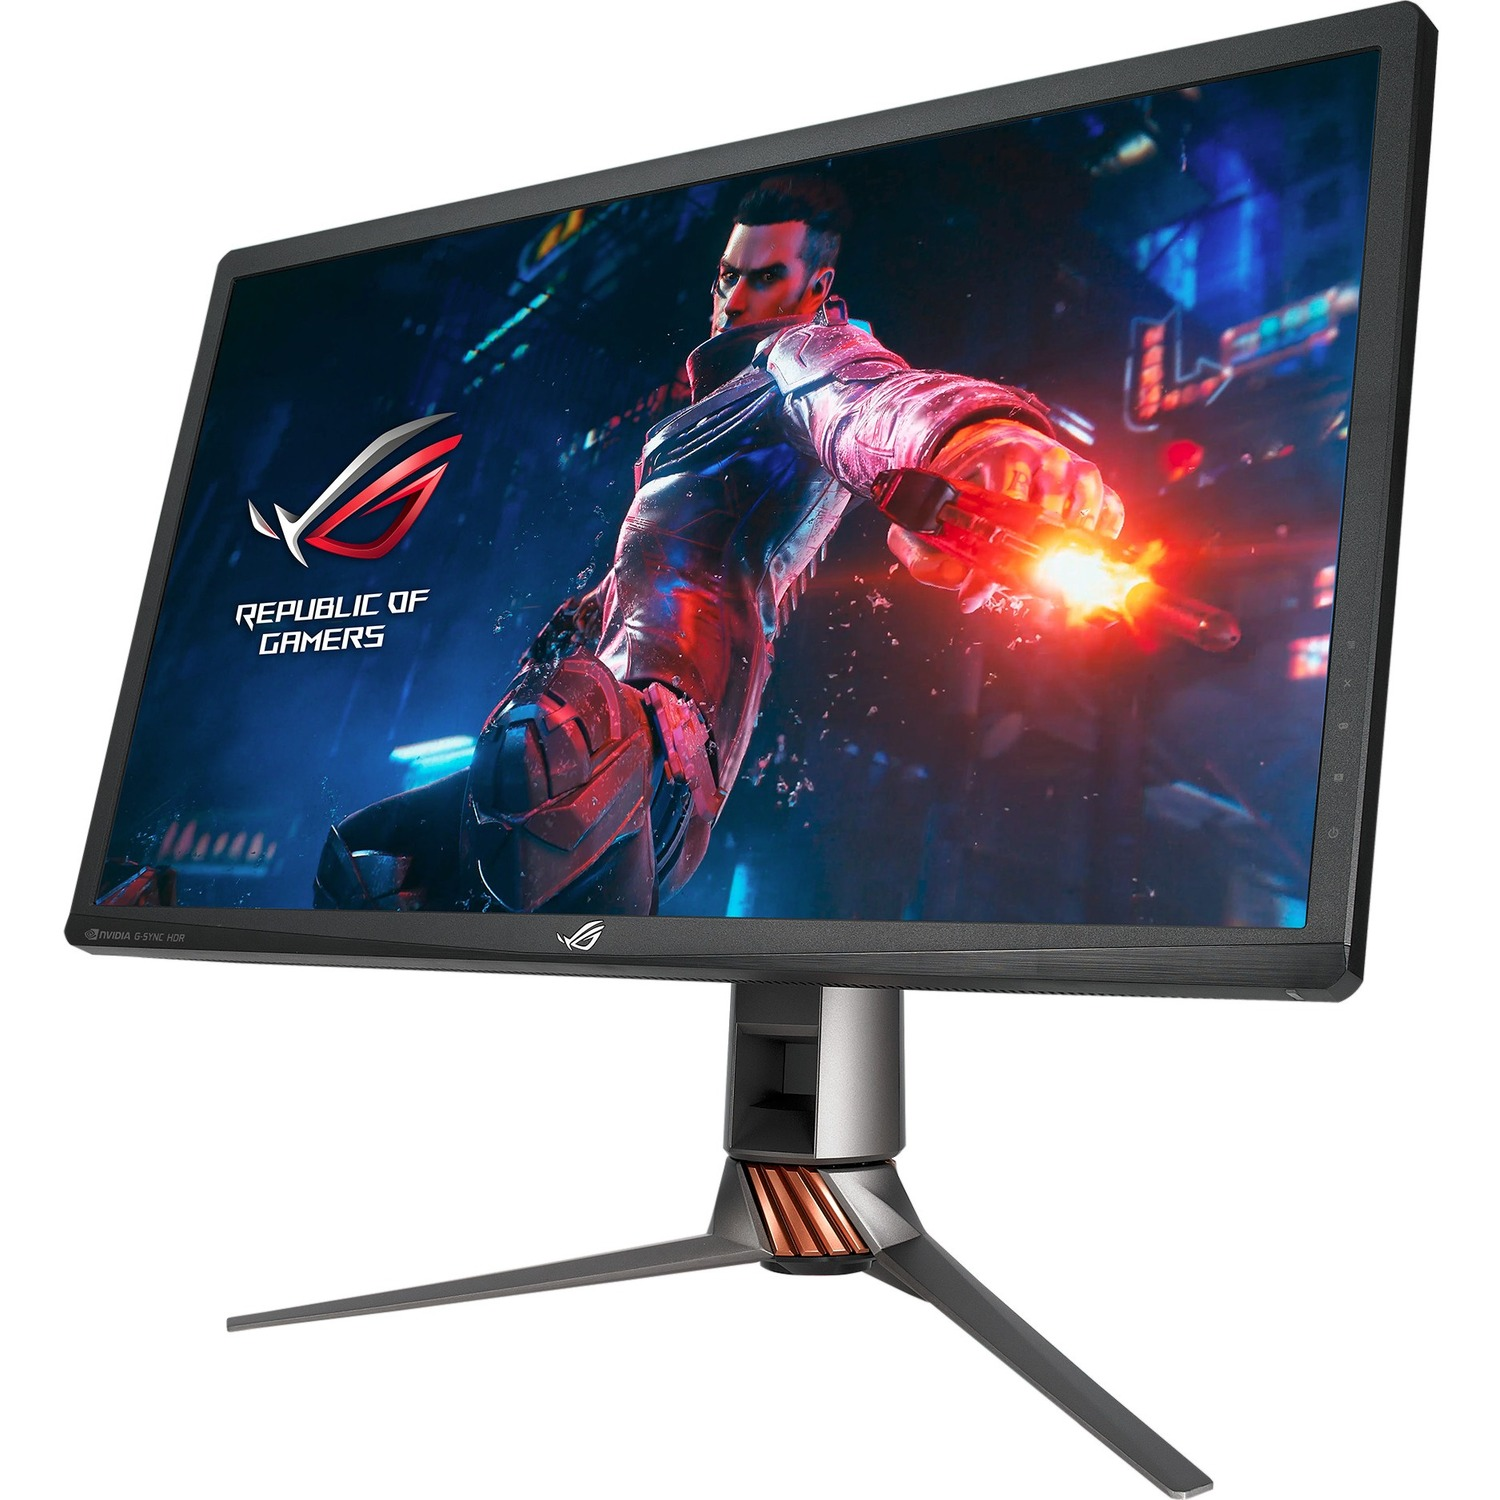 Asus ROG SWIFT PG27UQ 27inch IPS LED LCD Monitor - 16:9 - 1ms BTW - 144Hz